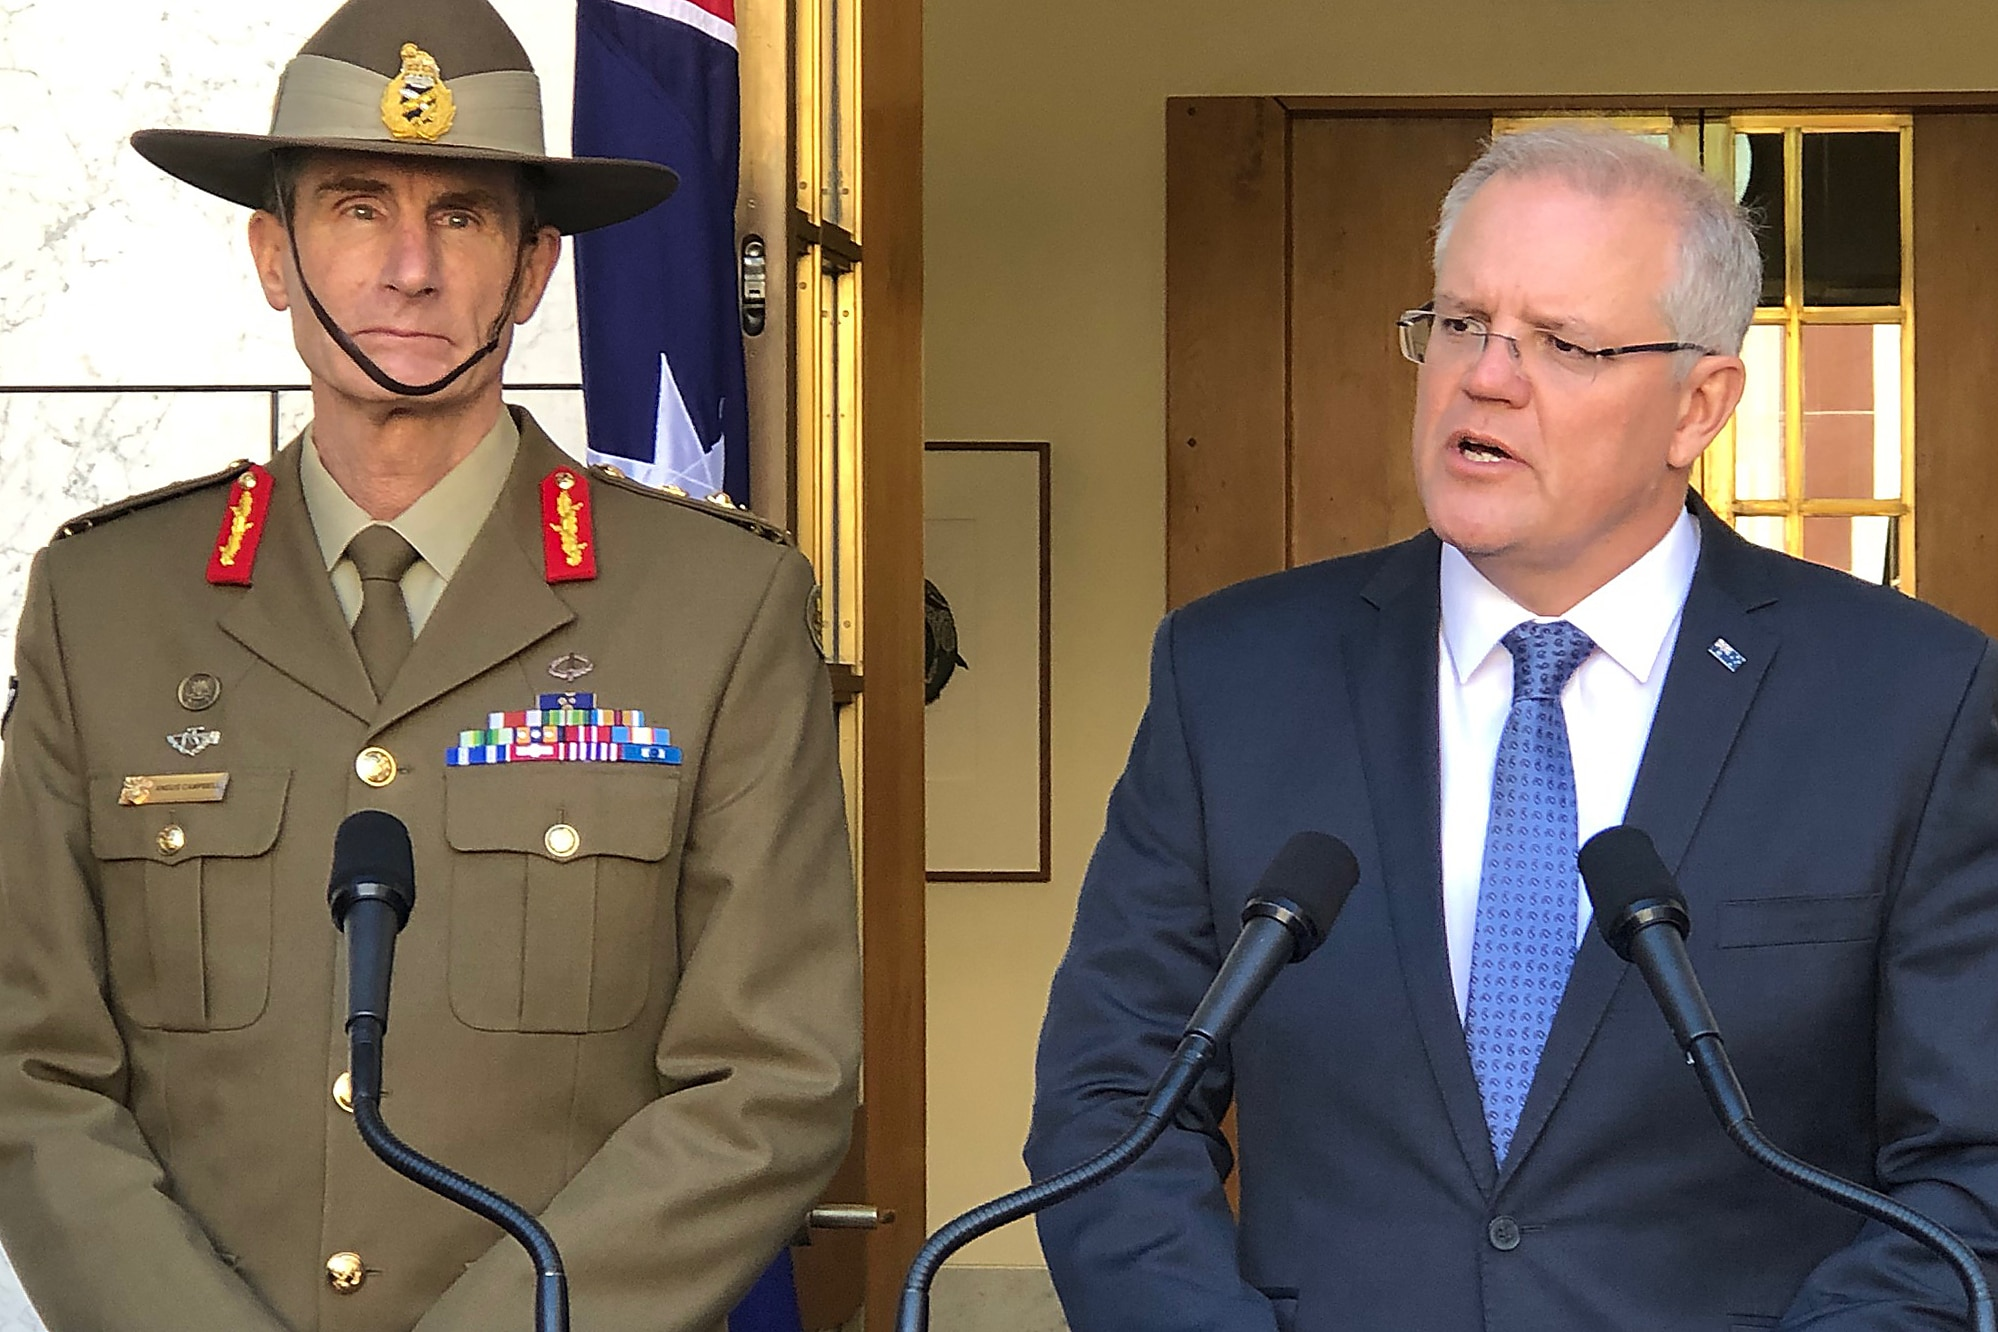 Prime Minister Scott Morrison (right) and Defence Force chief Angus Campbell announce Australia will send troops to the Strait of Hormuz.